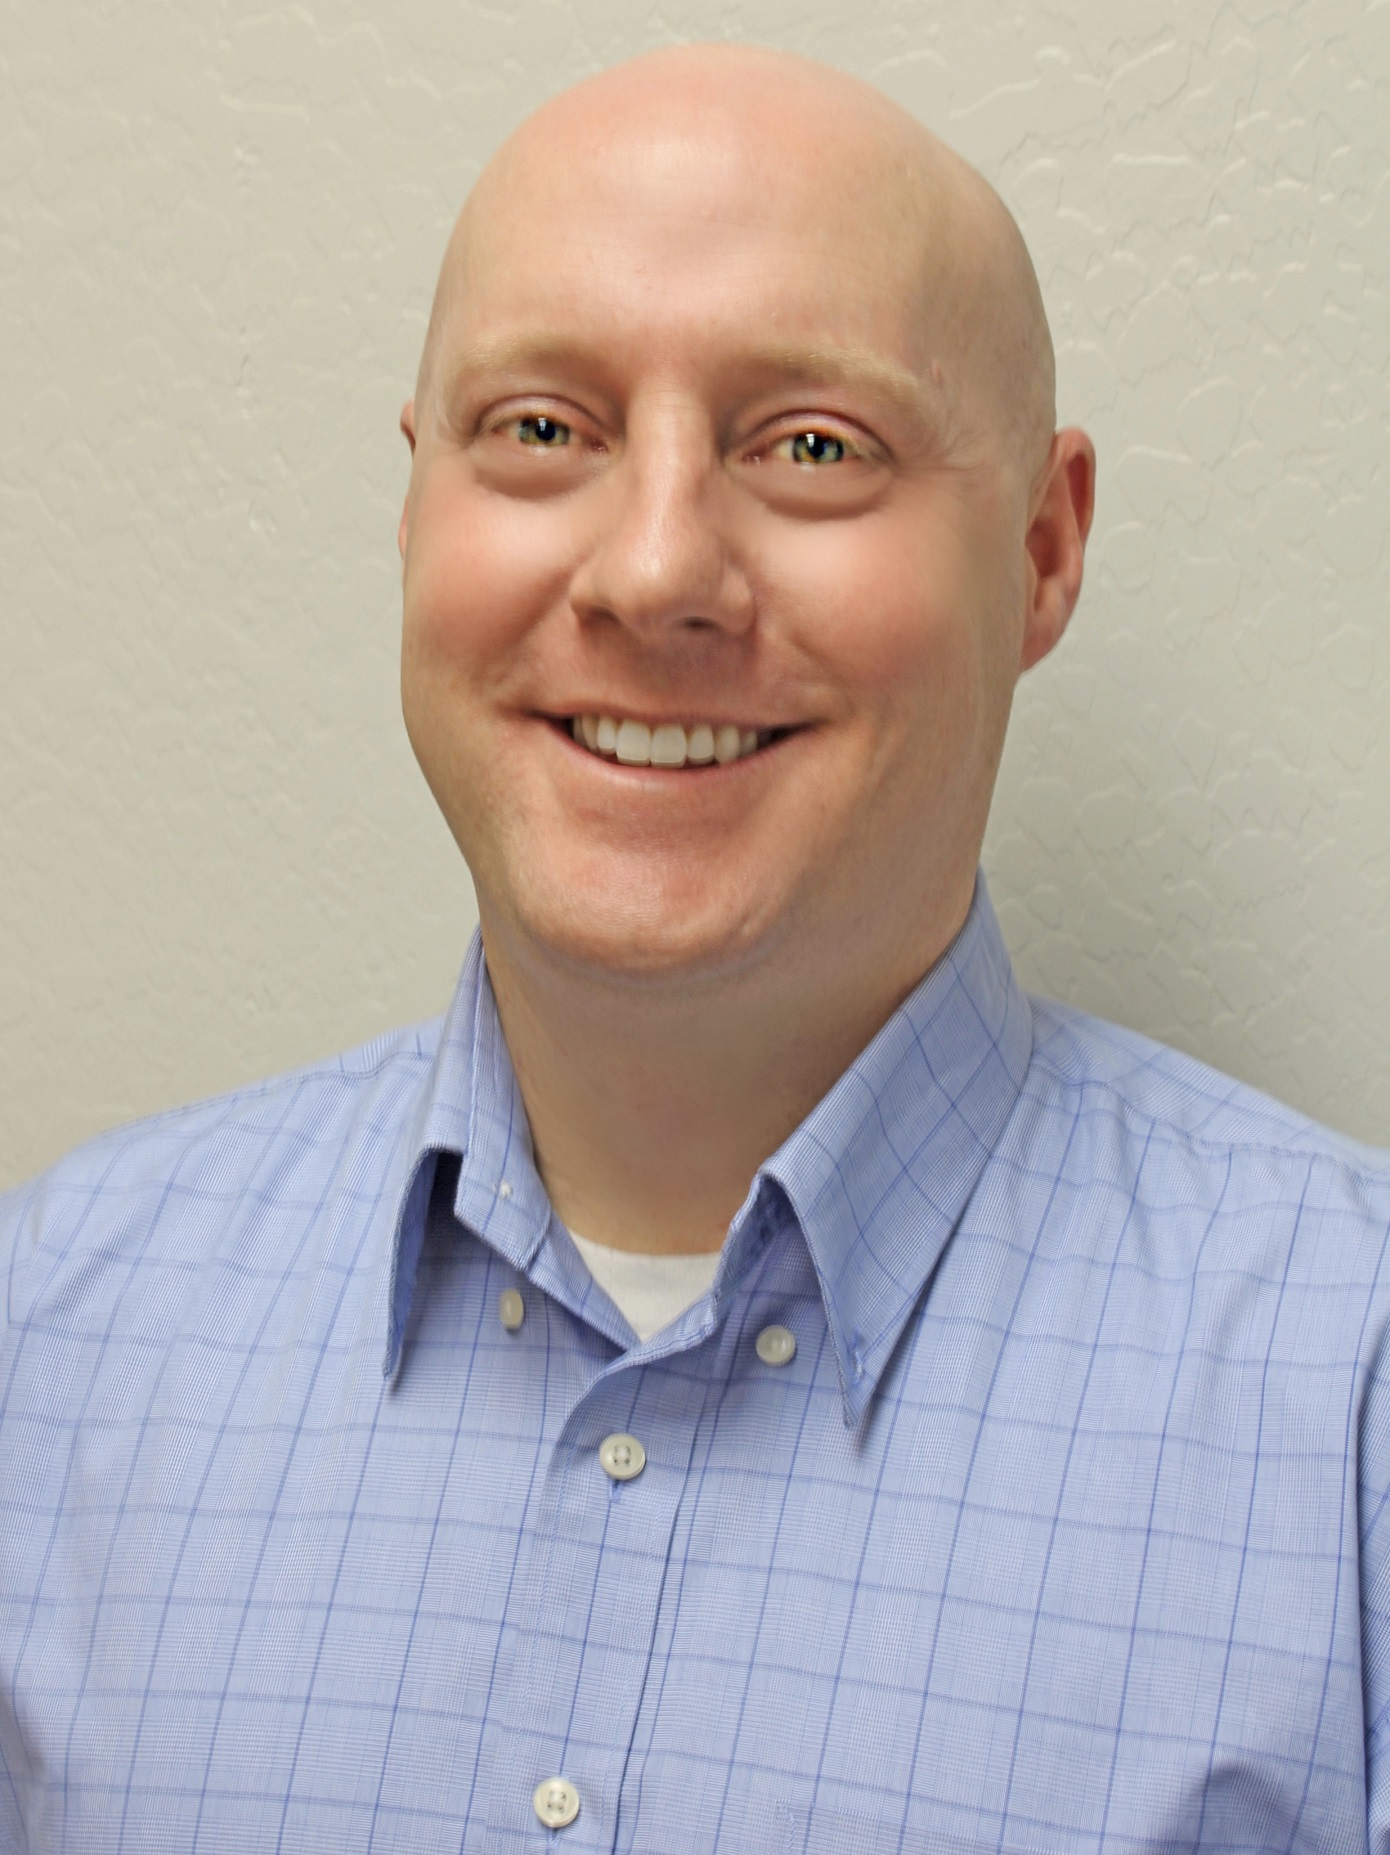 Physical therapy in Mesa is provided by David Call, PT, Doctor of Physical Therapy